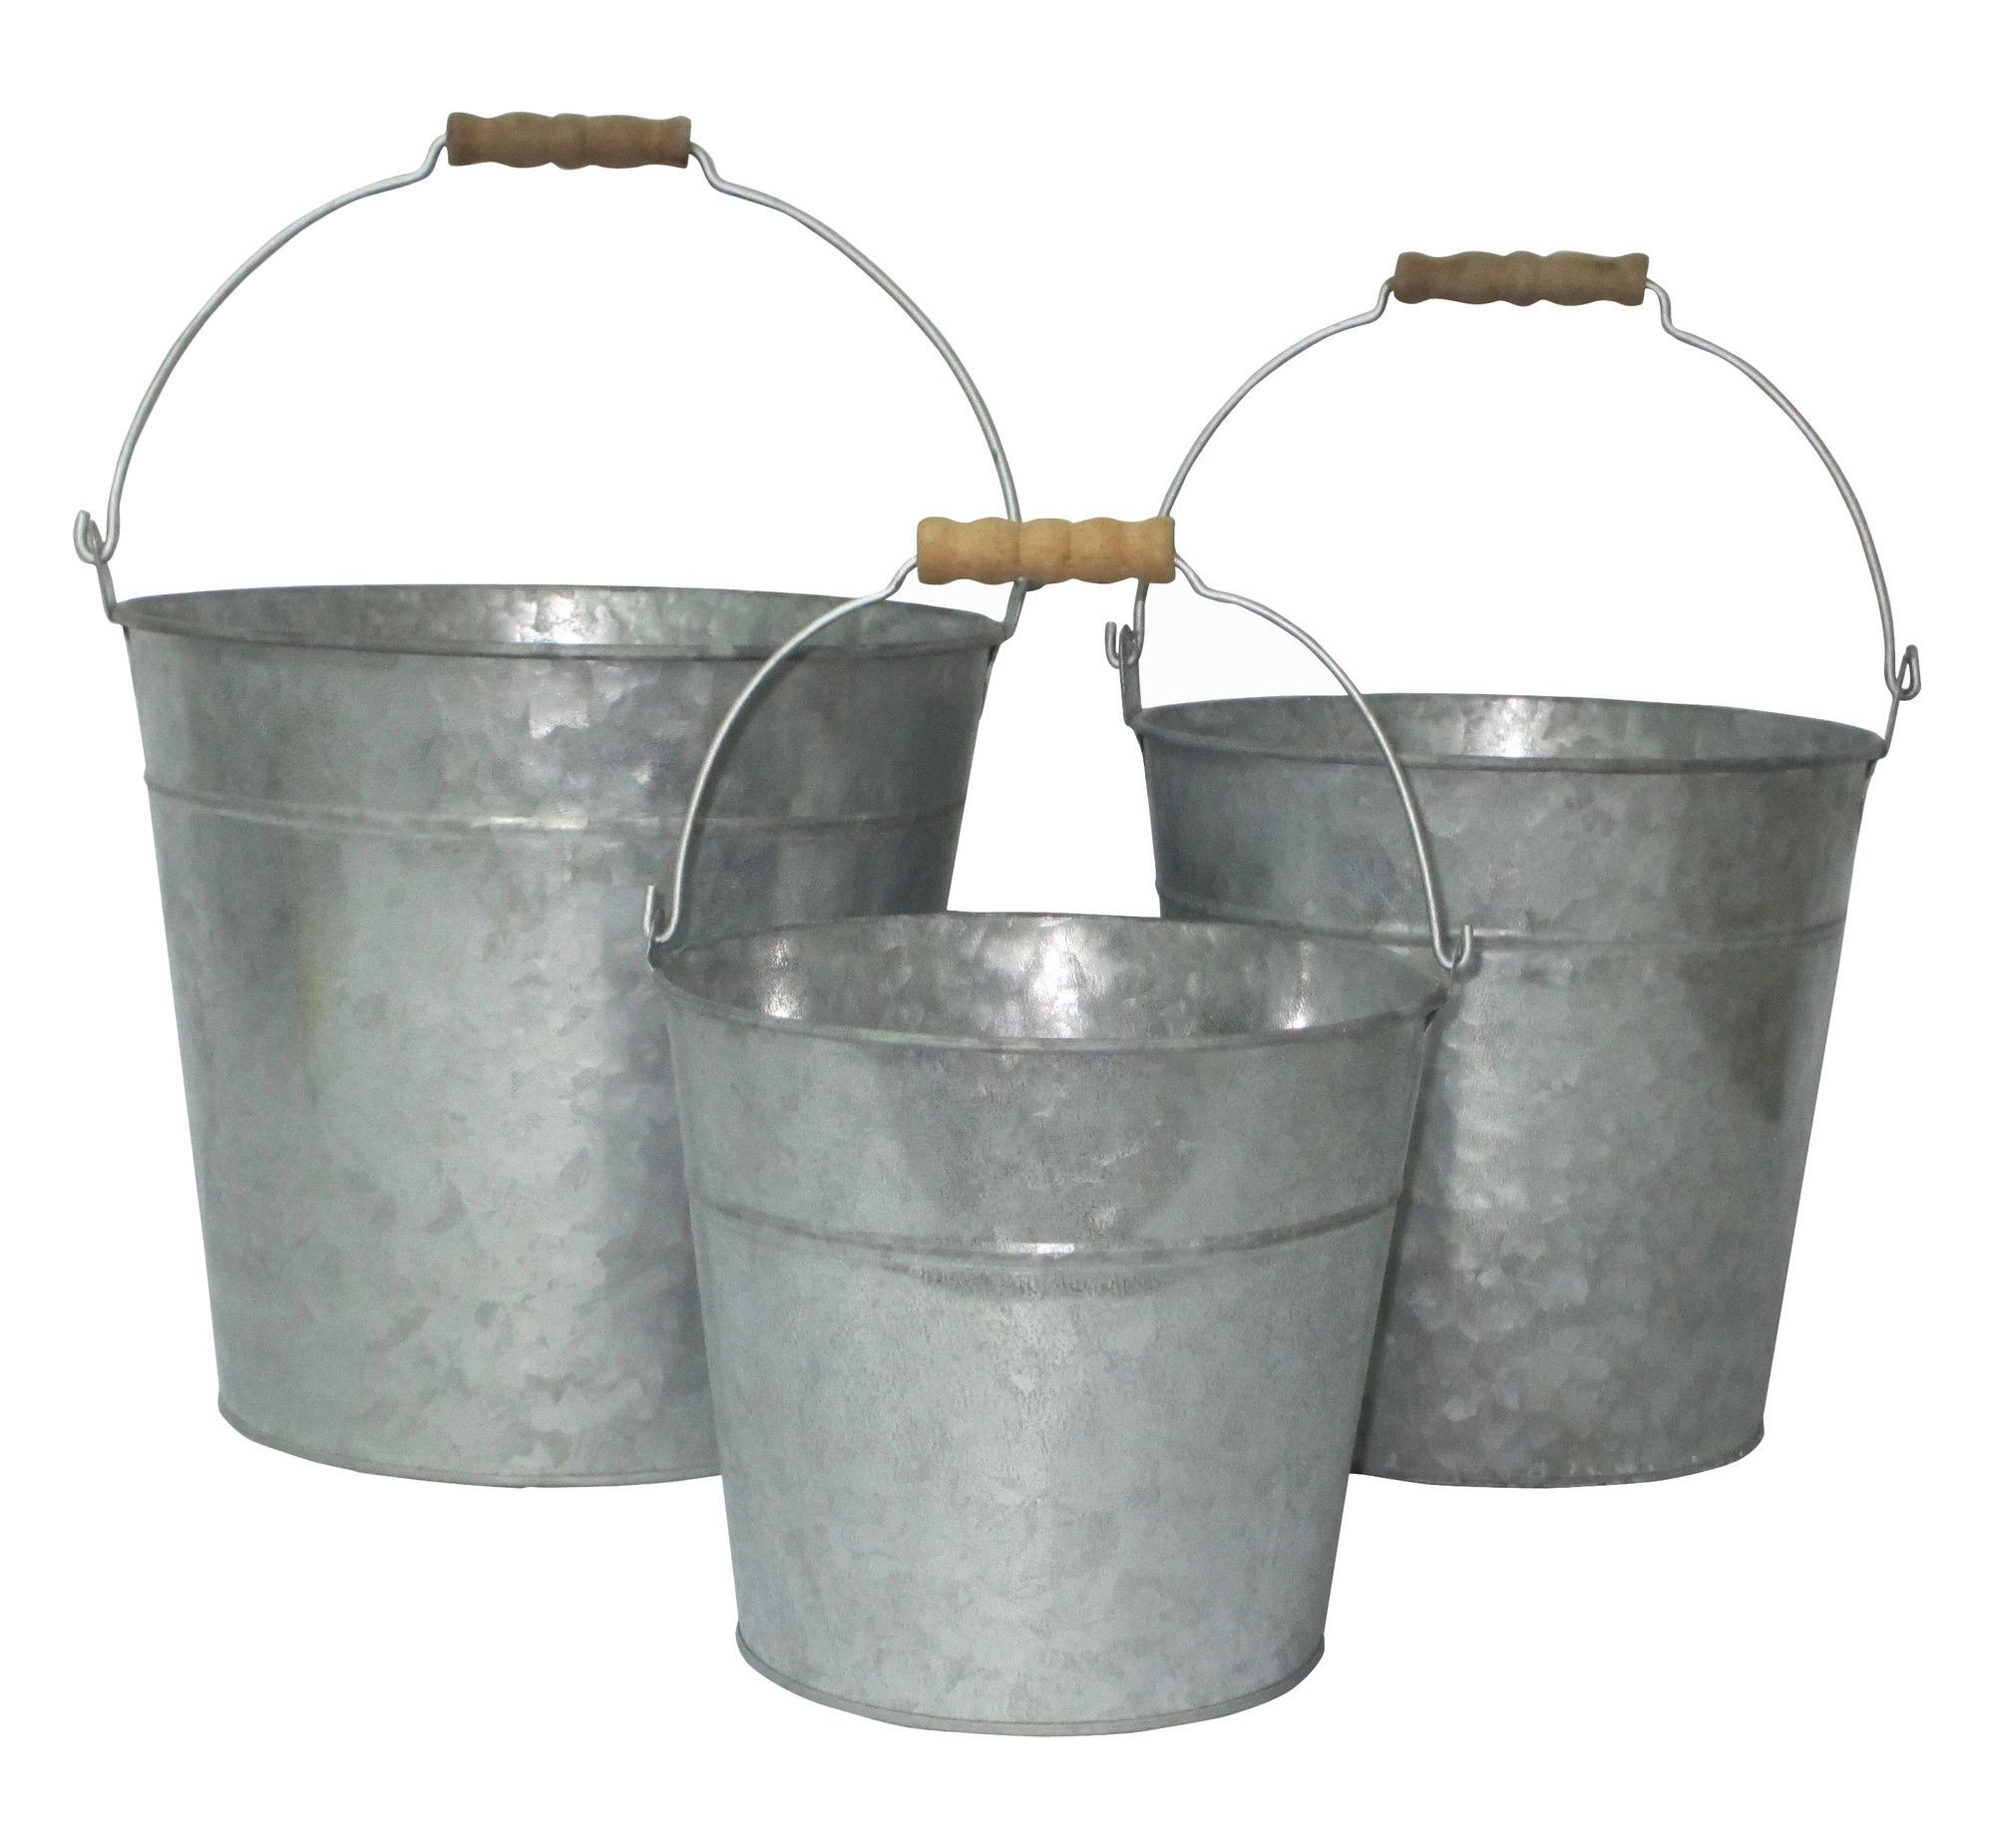 Cheungs 3 Piece Galvanized Bucket Set Metal Bucket Galvanized Metal Galvanized Buckets